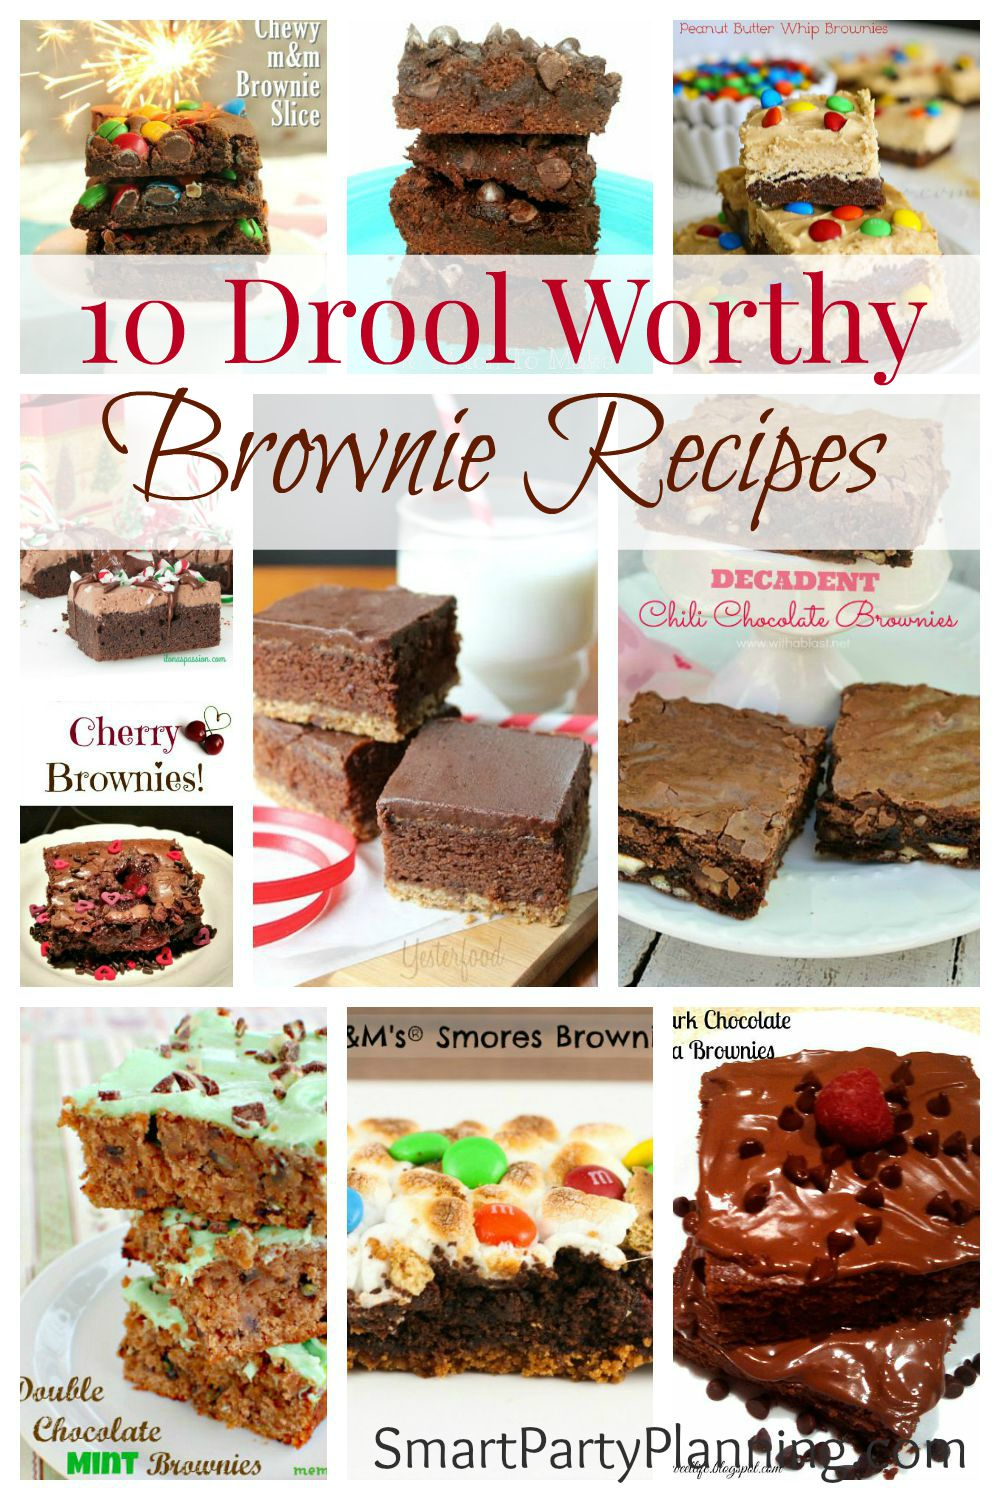 10 Drool Worthy Brownie Recipes